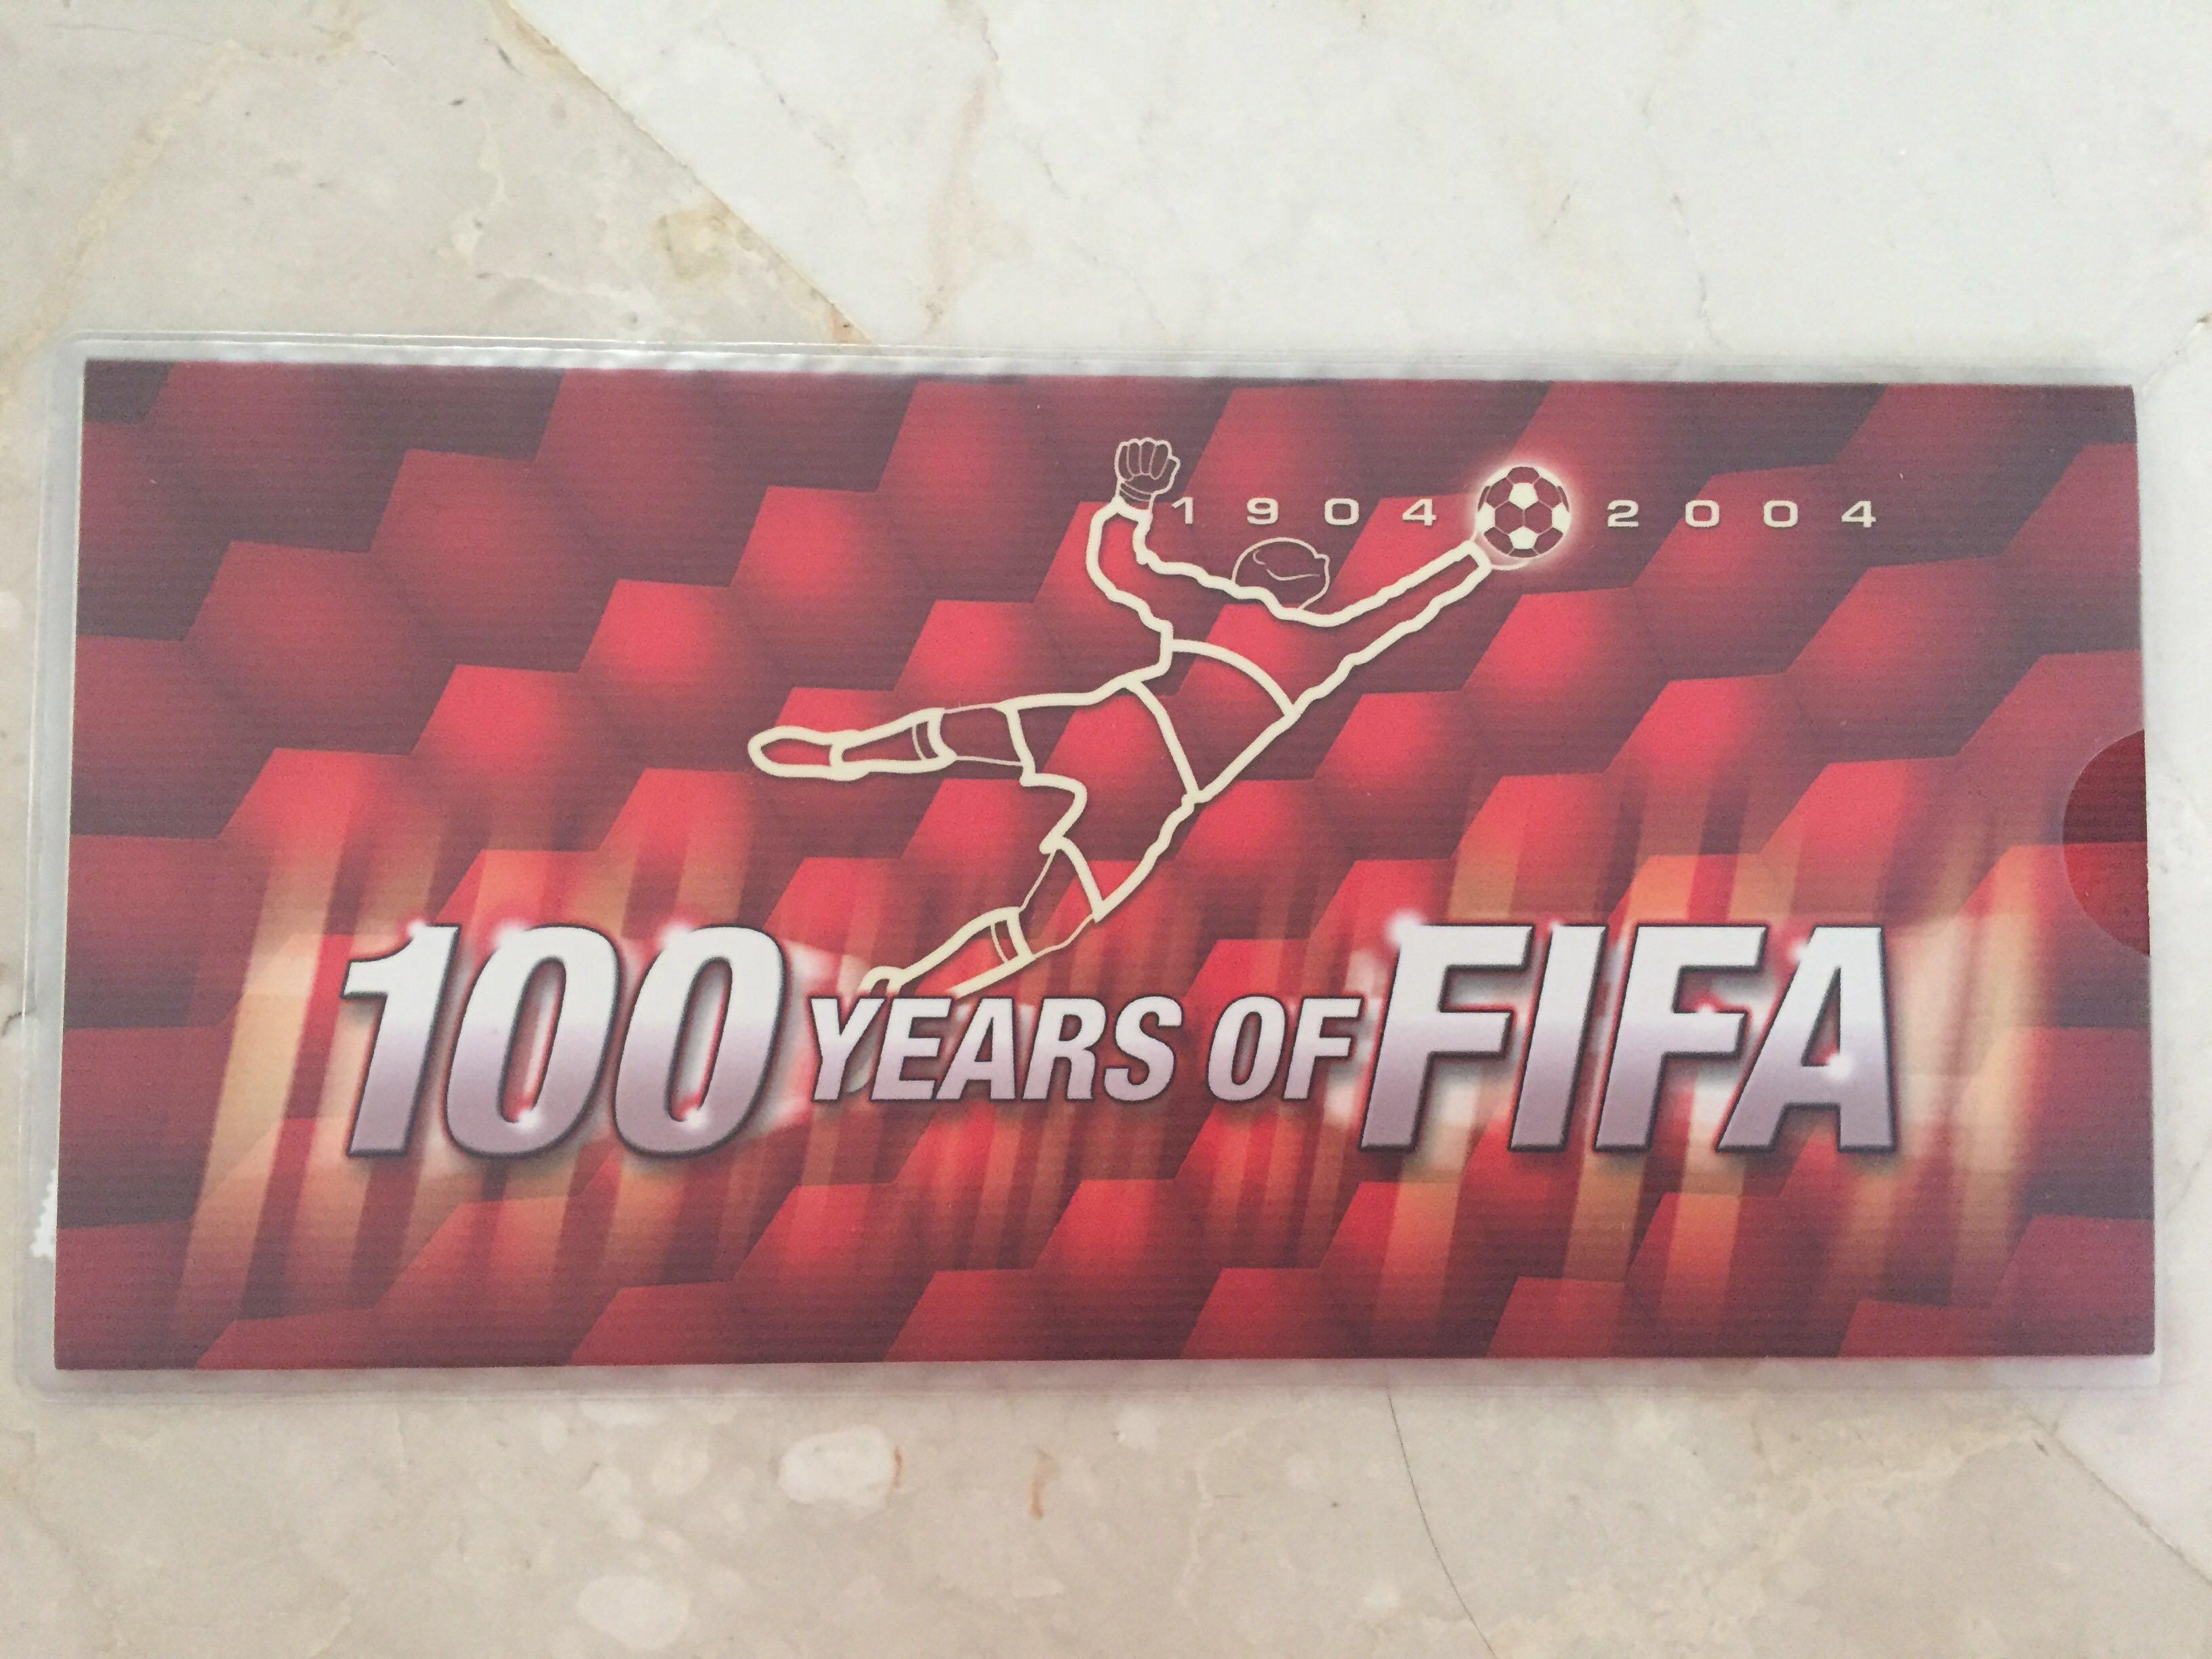 Limited Edition 100 years of FIFA collectible stamps